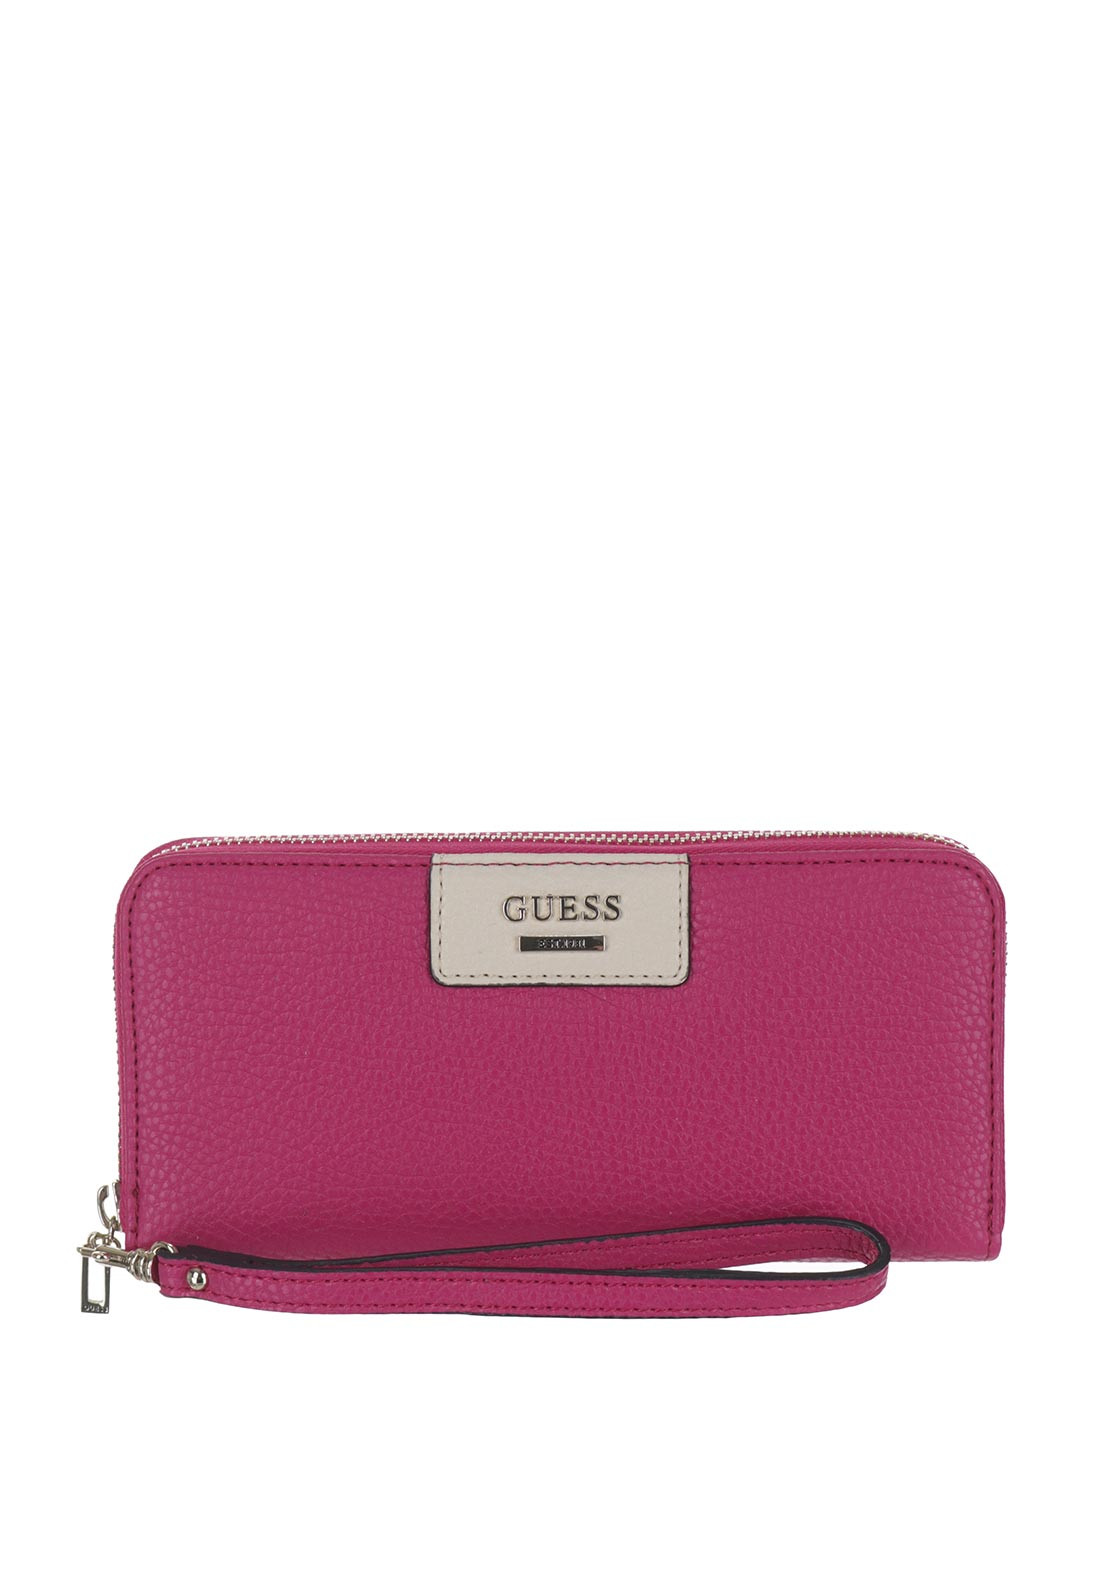 Guess Bobbi Large Wristlet Zip Around Purse, Passion